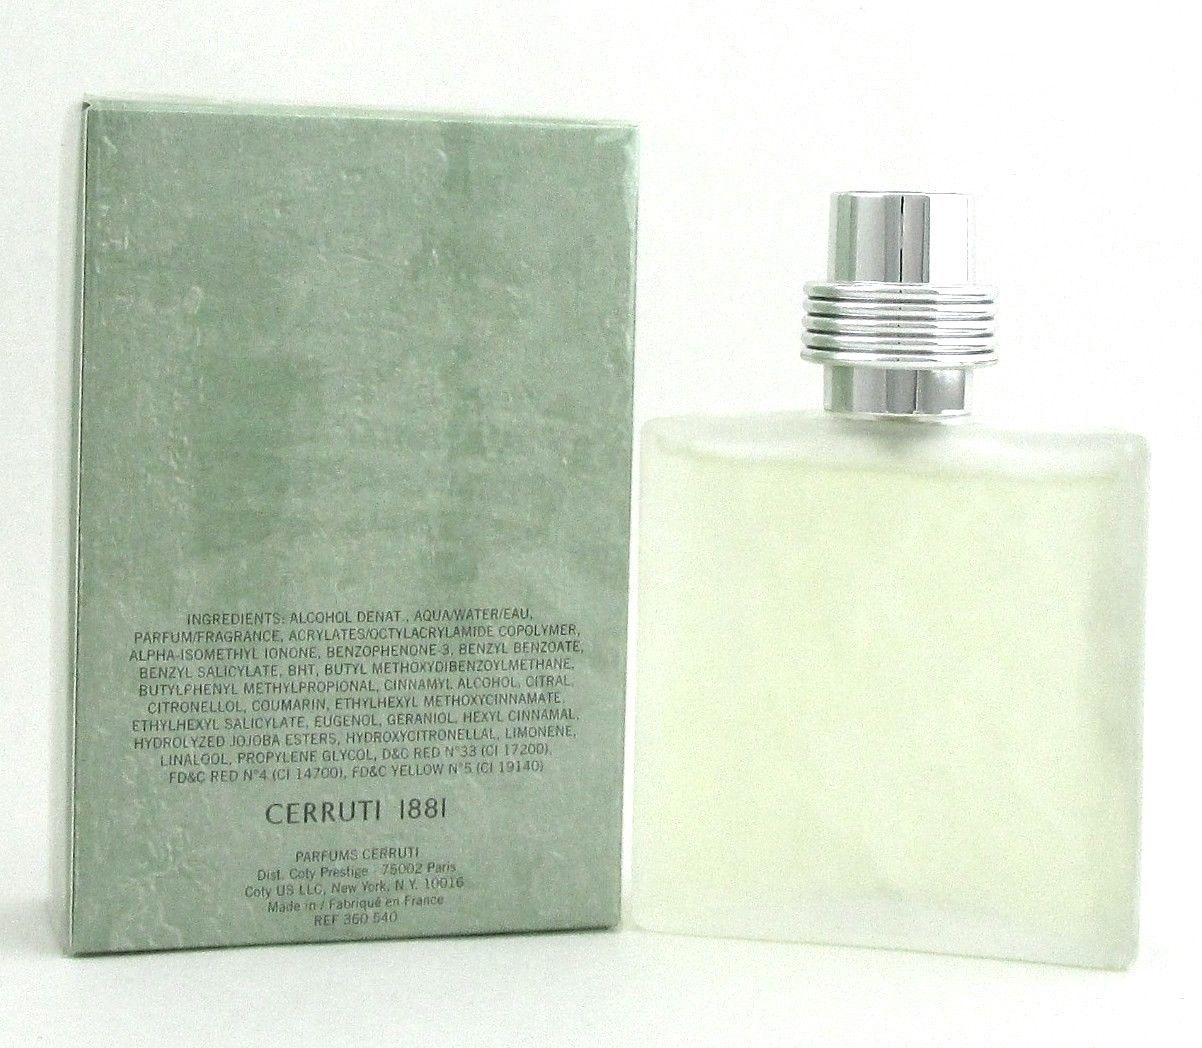 Cerruti 1881 by Cerruti Cologne for Men 3.4oz./100ml. Eau de Toilette Spray. New